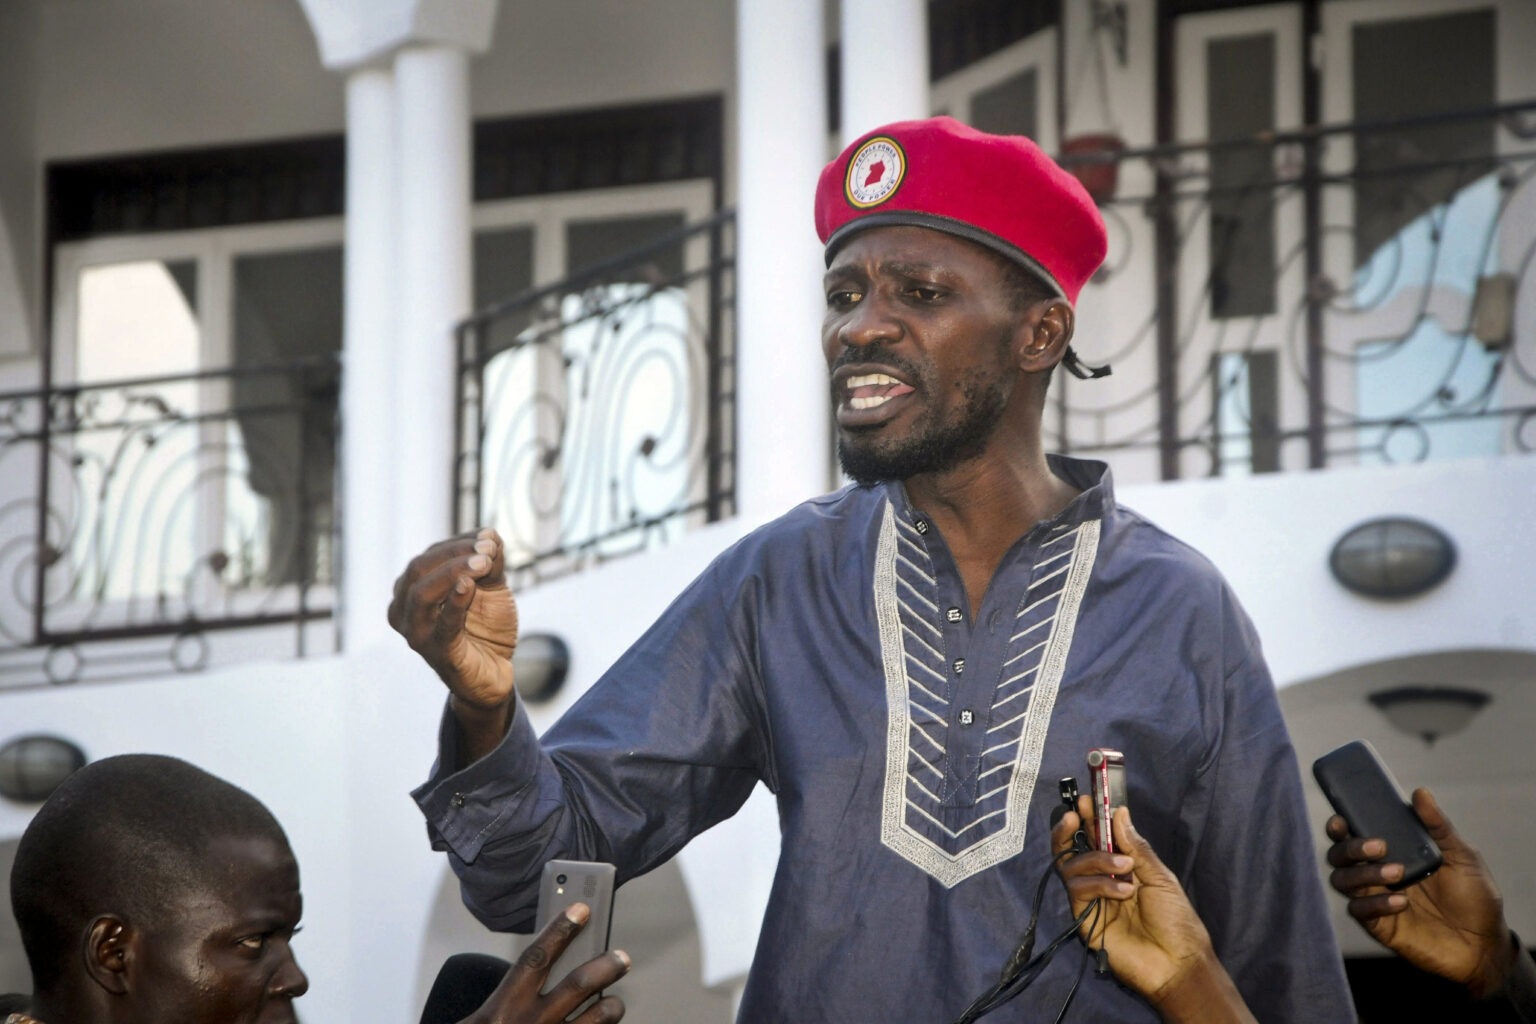 Ugandan Presidential Candidate, Bobi Wine Raises Alarm Over Military Siege at His Home